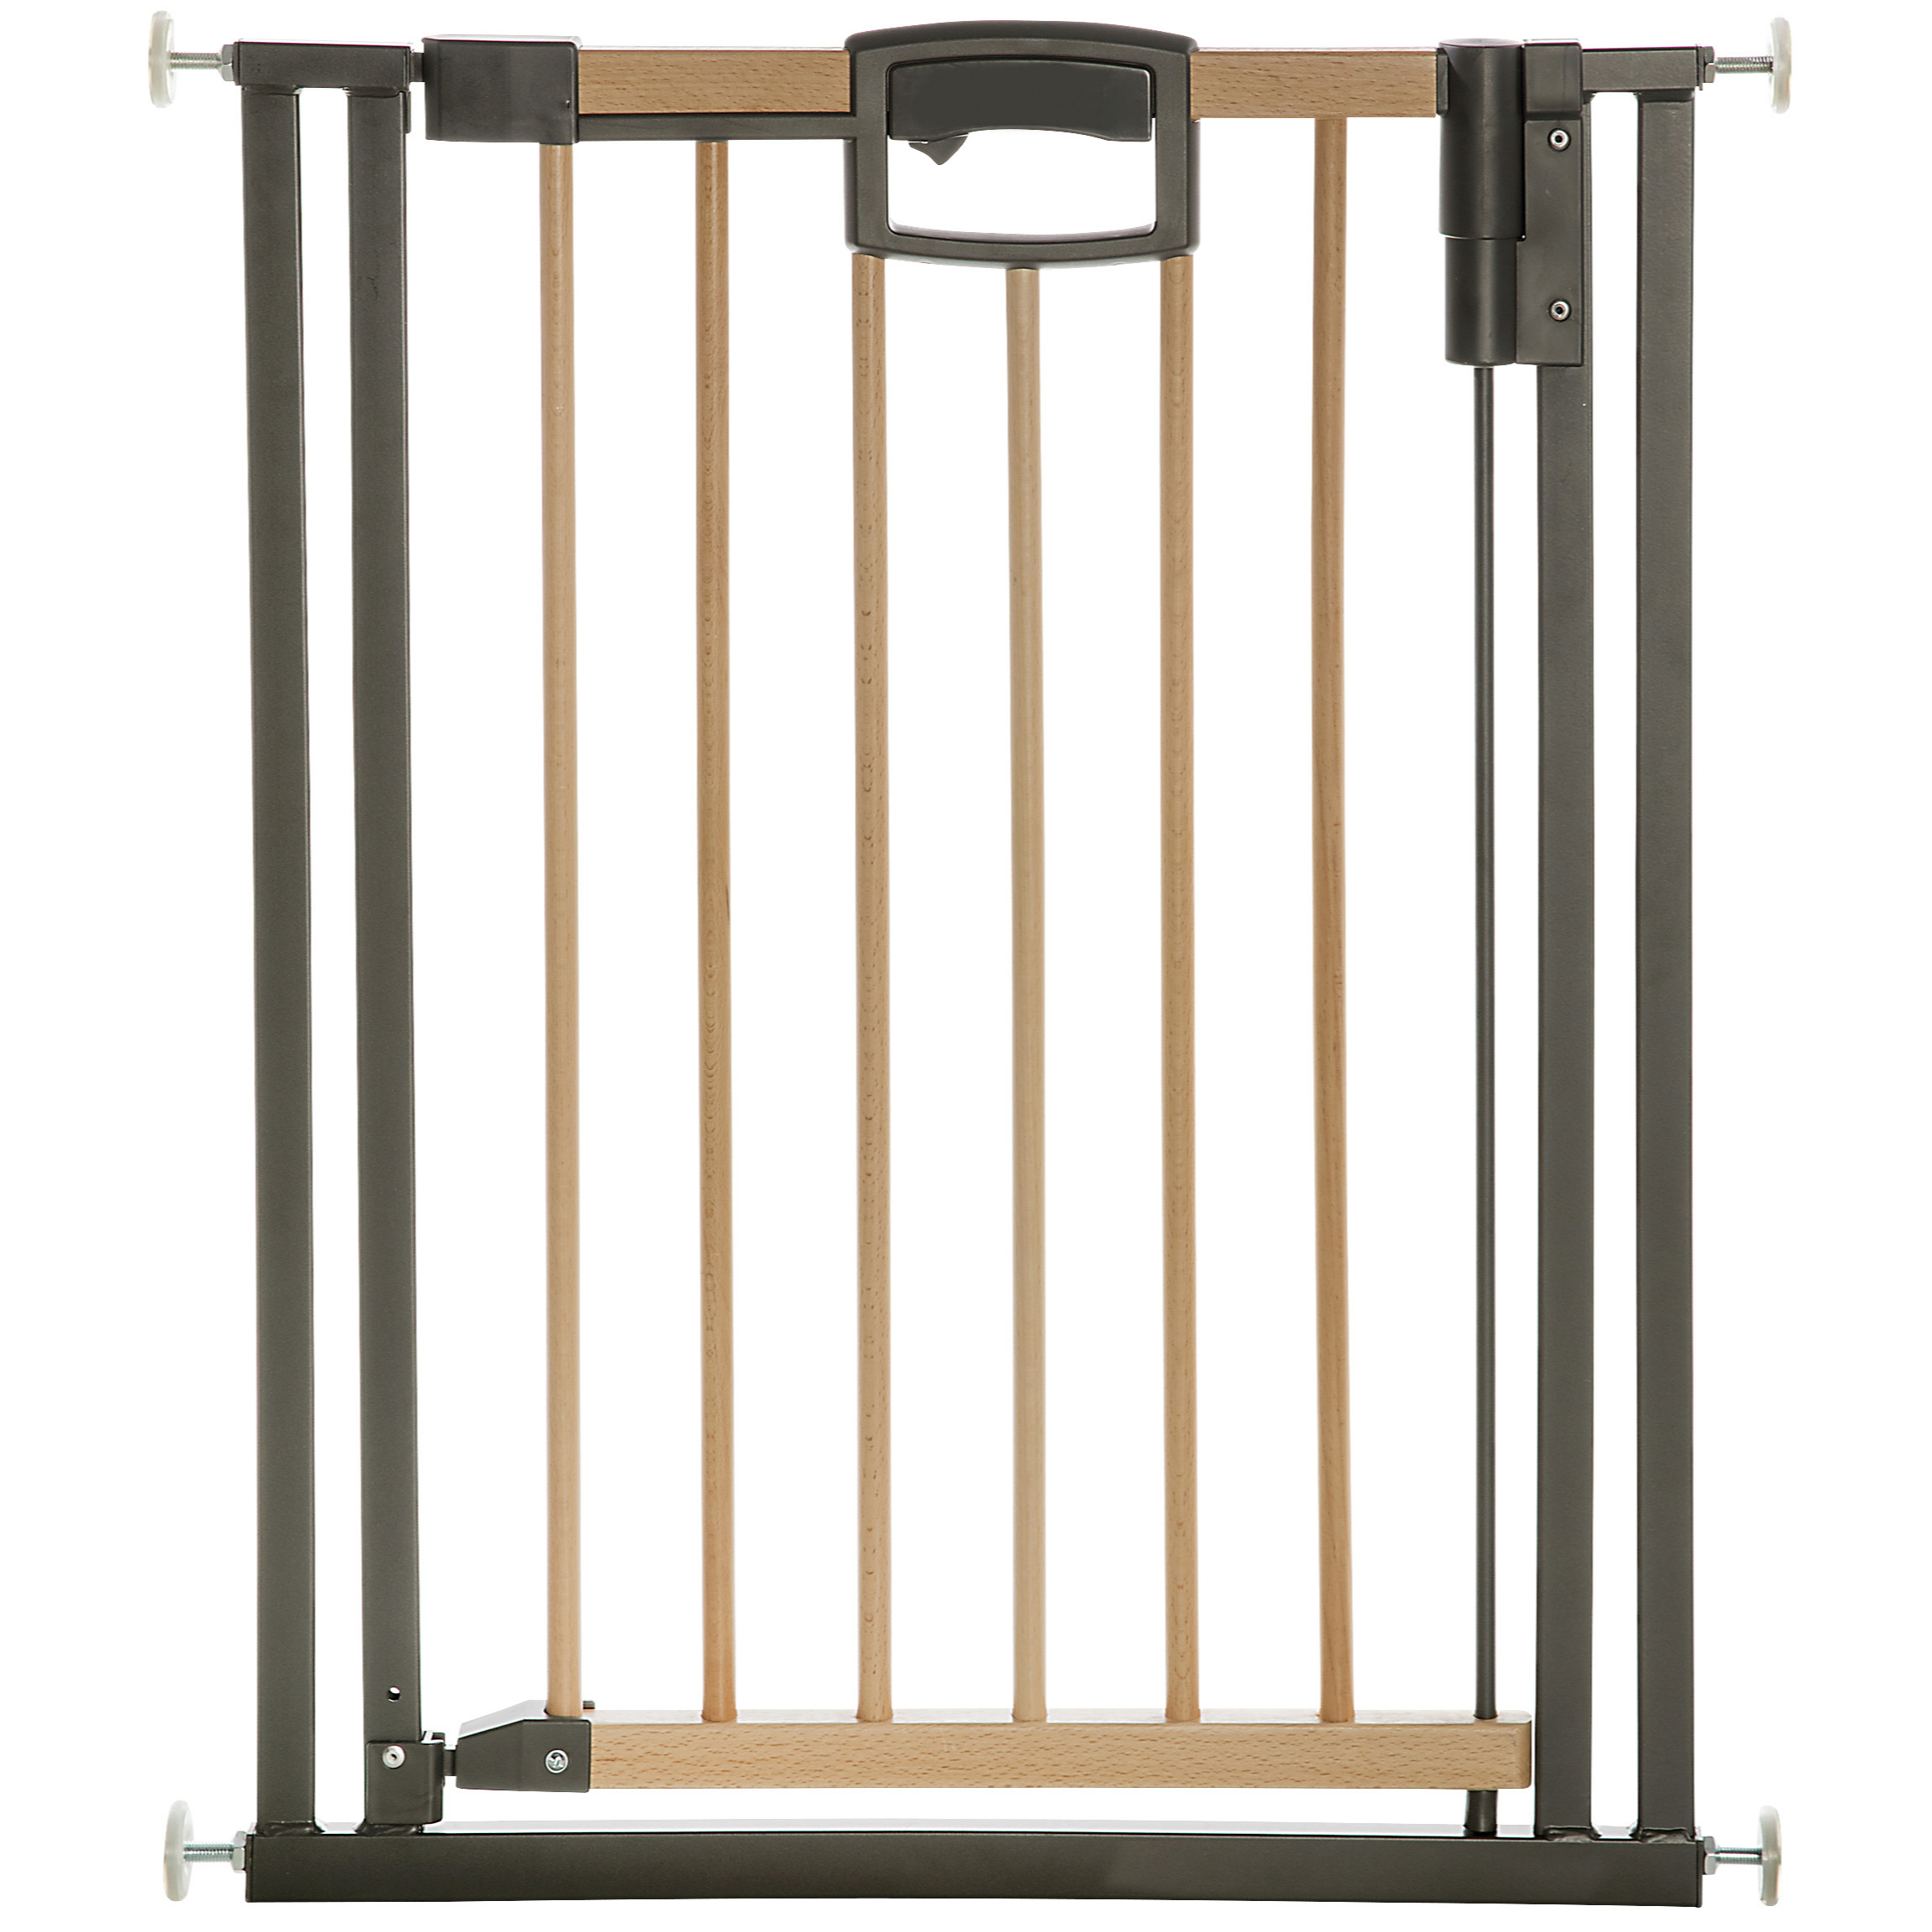 Geuther Easylock Wood Plus 2791 Safety Gate